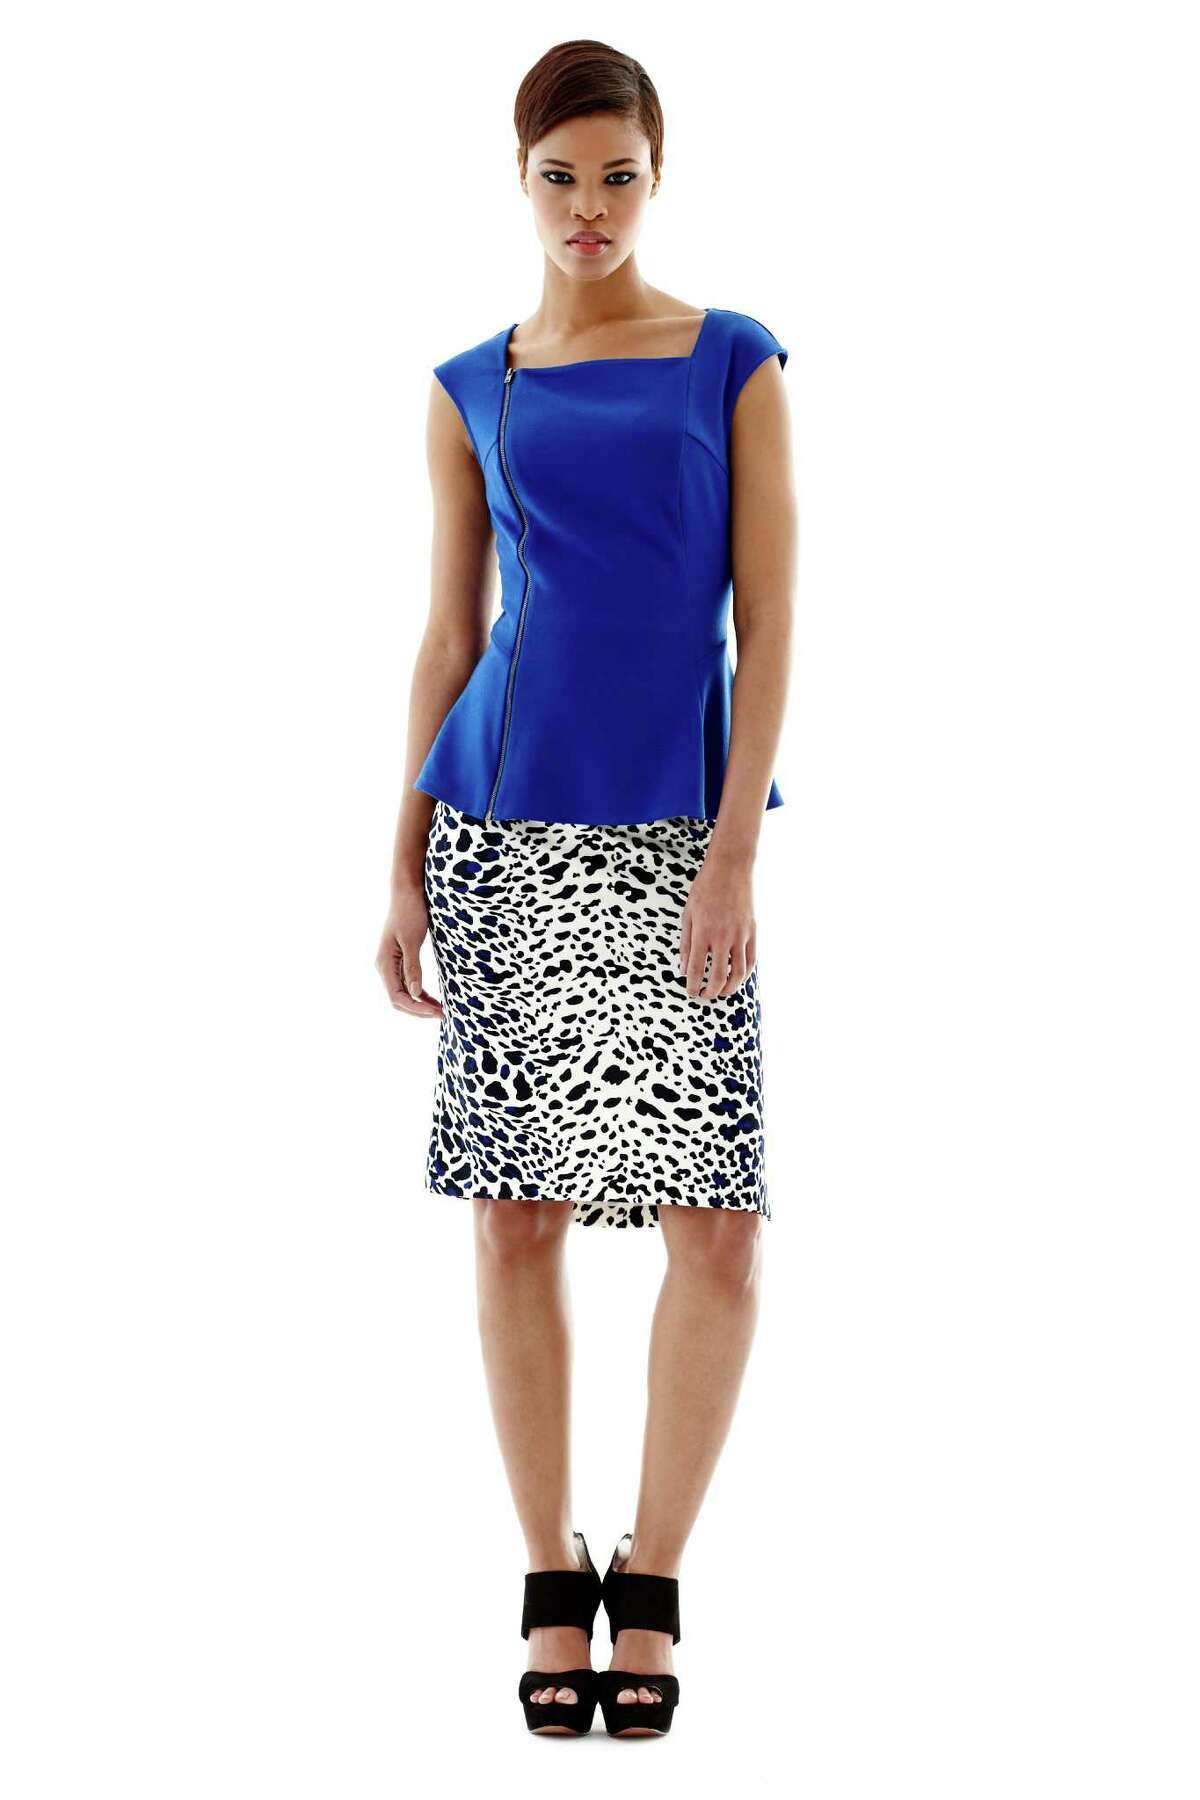 A bright cobalt blue side zip peplum top from Worthington is teamed with a animal print pencil skirt, each $36, both by Worthington, avialable at JCPenney.